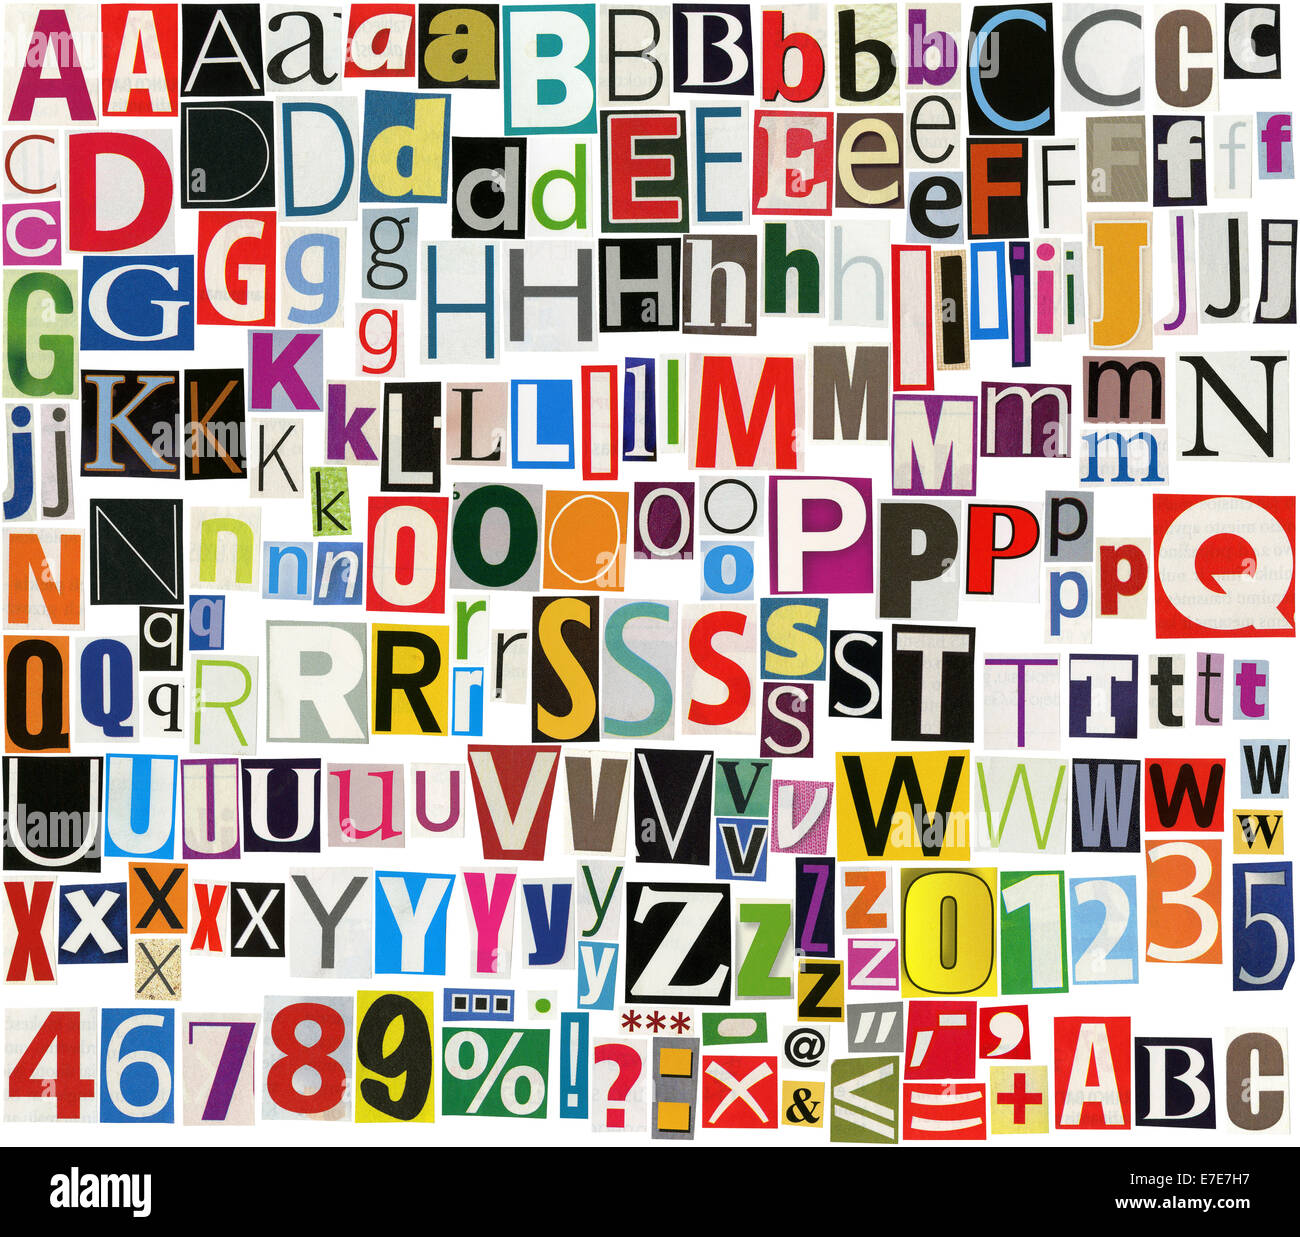 Cut newspaper magazine letters numbers stock photos cut newspaper big size newspaper magazine alphabet with letters numbers and symbols stock image spiritdancerdesigns Images